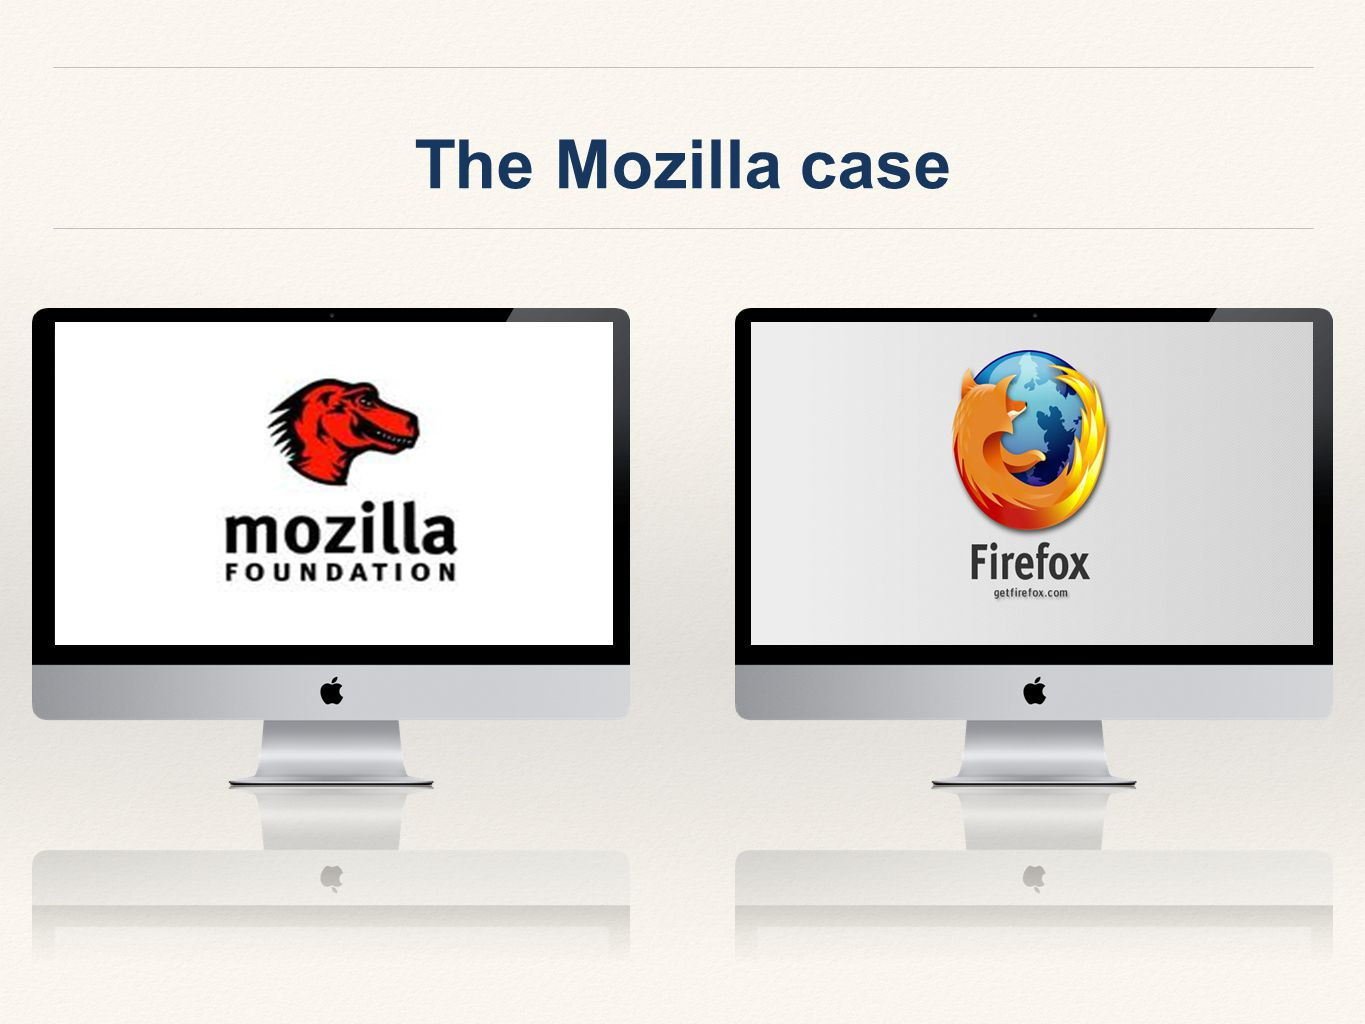 The Mozilla case